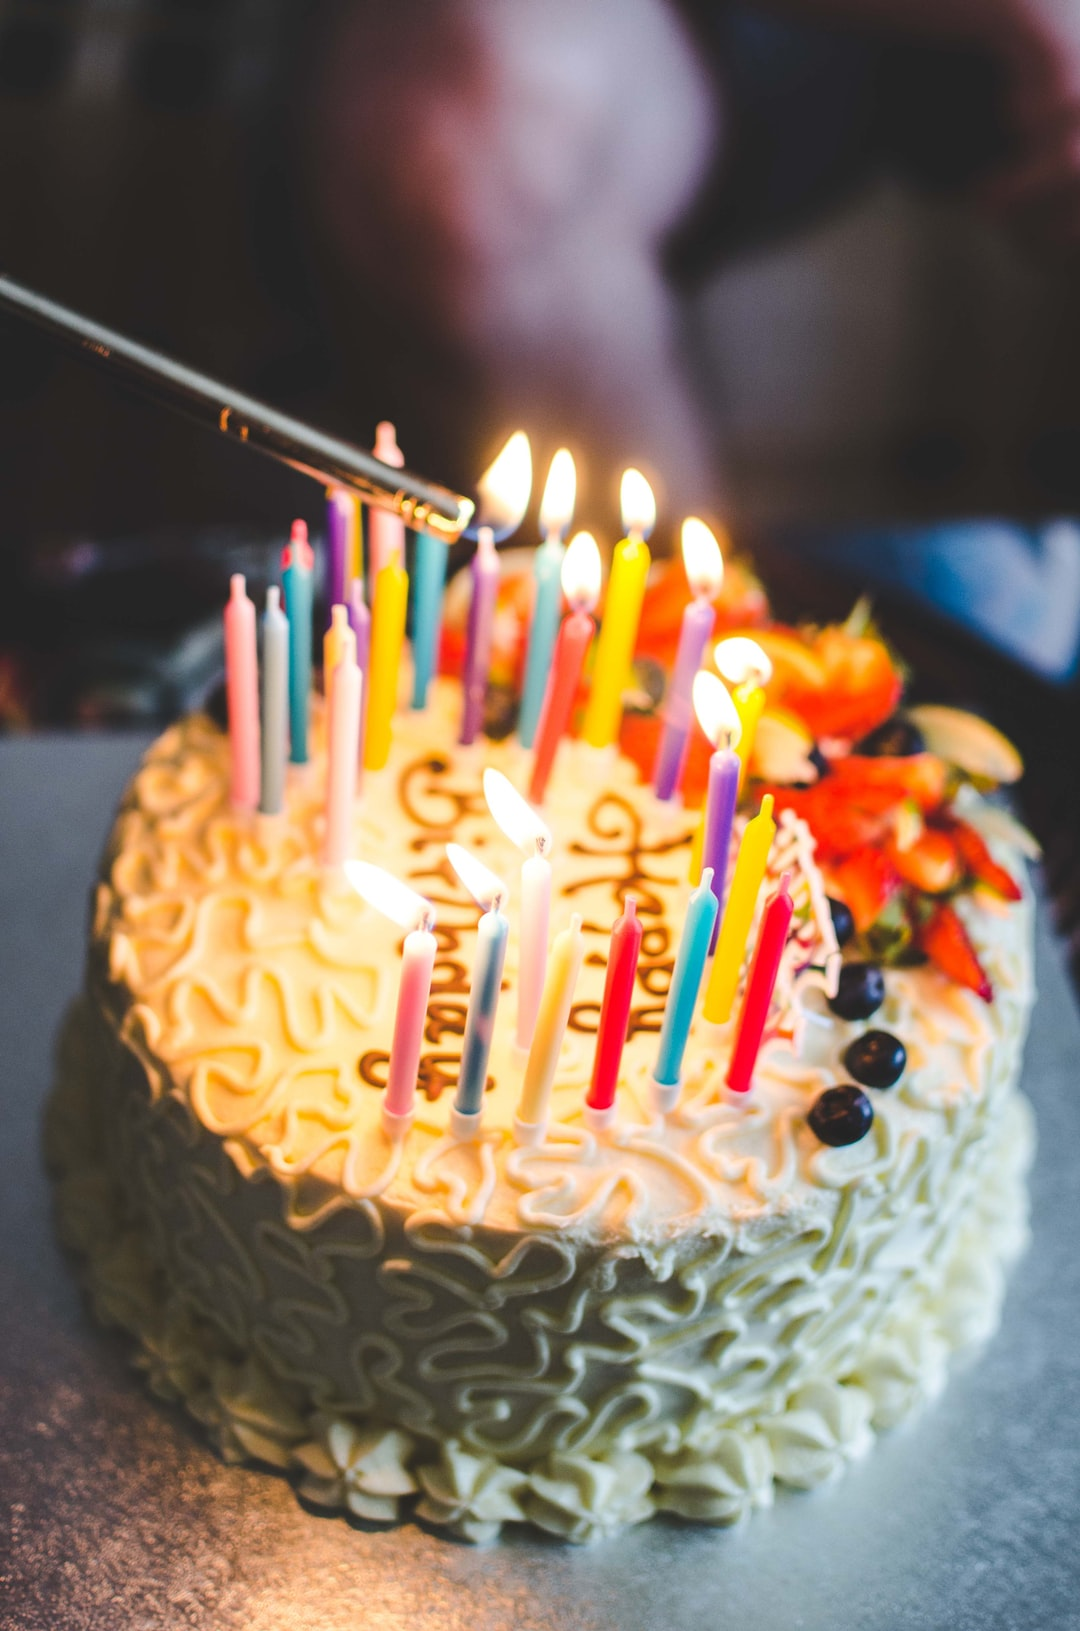 100+ Birthday Cake Pictures | Download Free Images & Stock ...